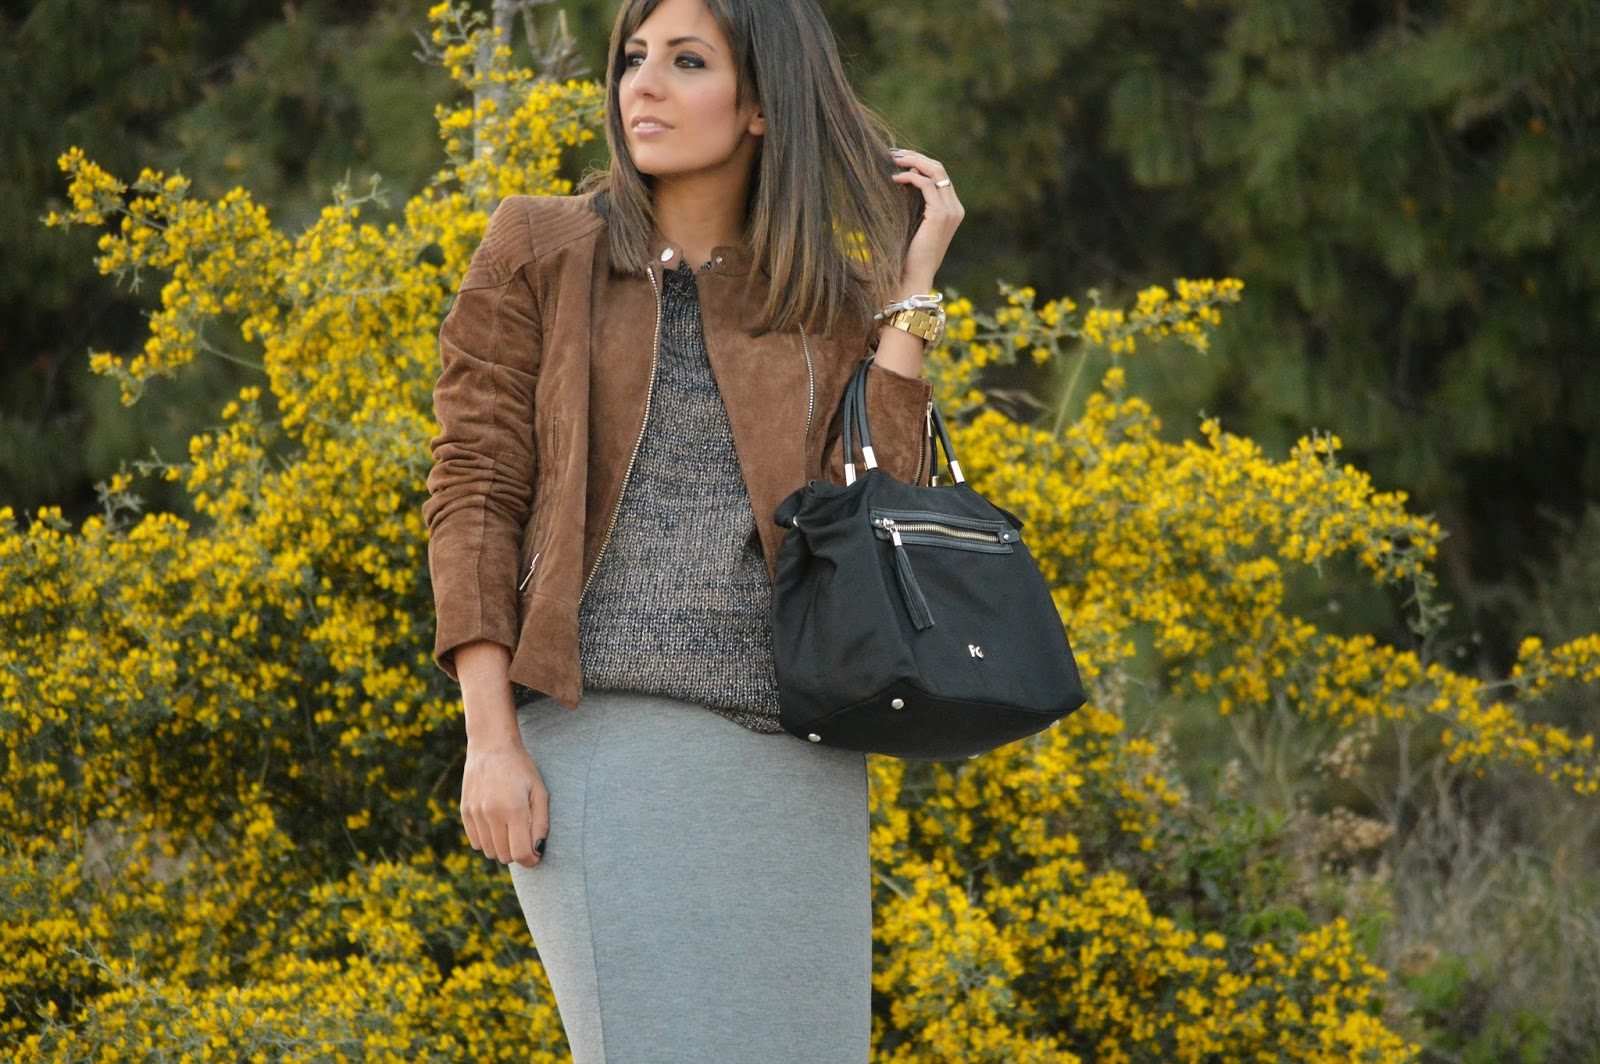 street style cristina style fashion blogger malagueña blogger malagueña chic outfit look casual long skirt mango h&m lovely gorgeous ootd fashion